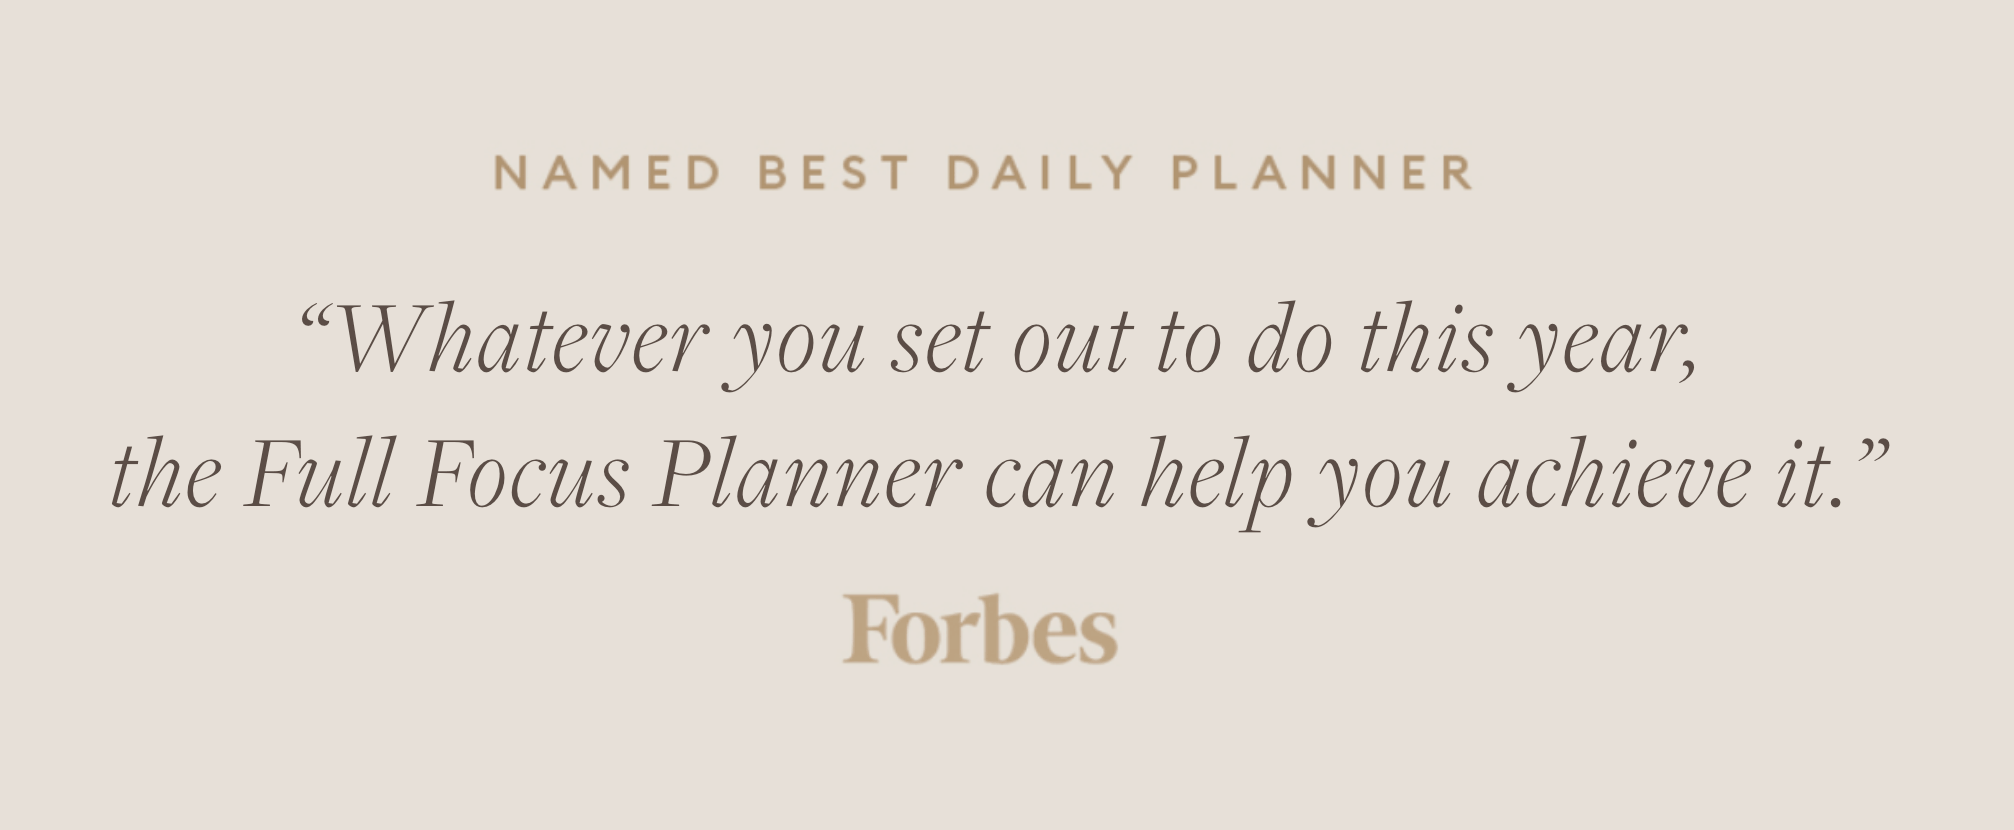 Named Best Daily Plannery by Forbes